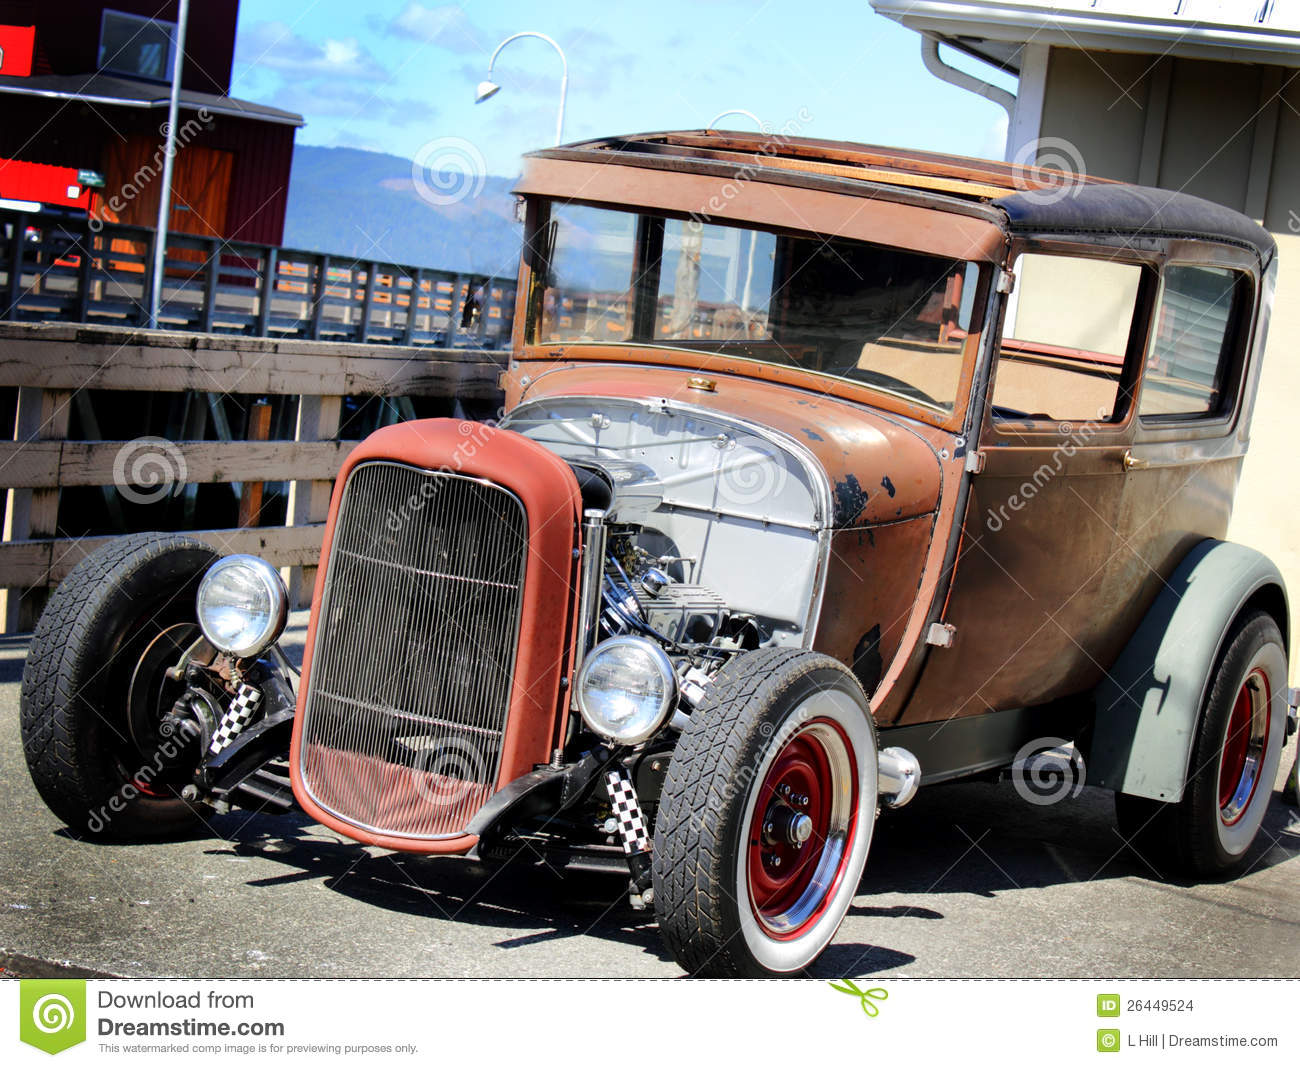 Vintage Hot Rod stock photo. Image of model, manufacturing - 26449524